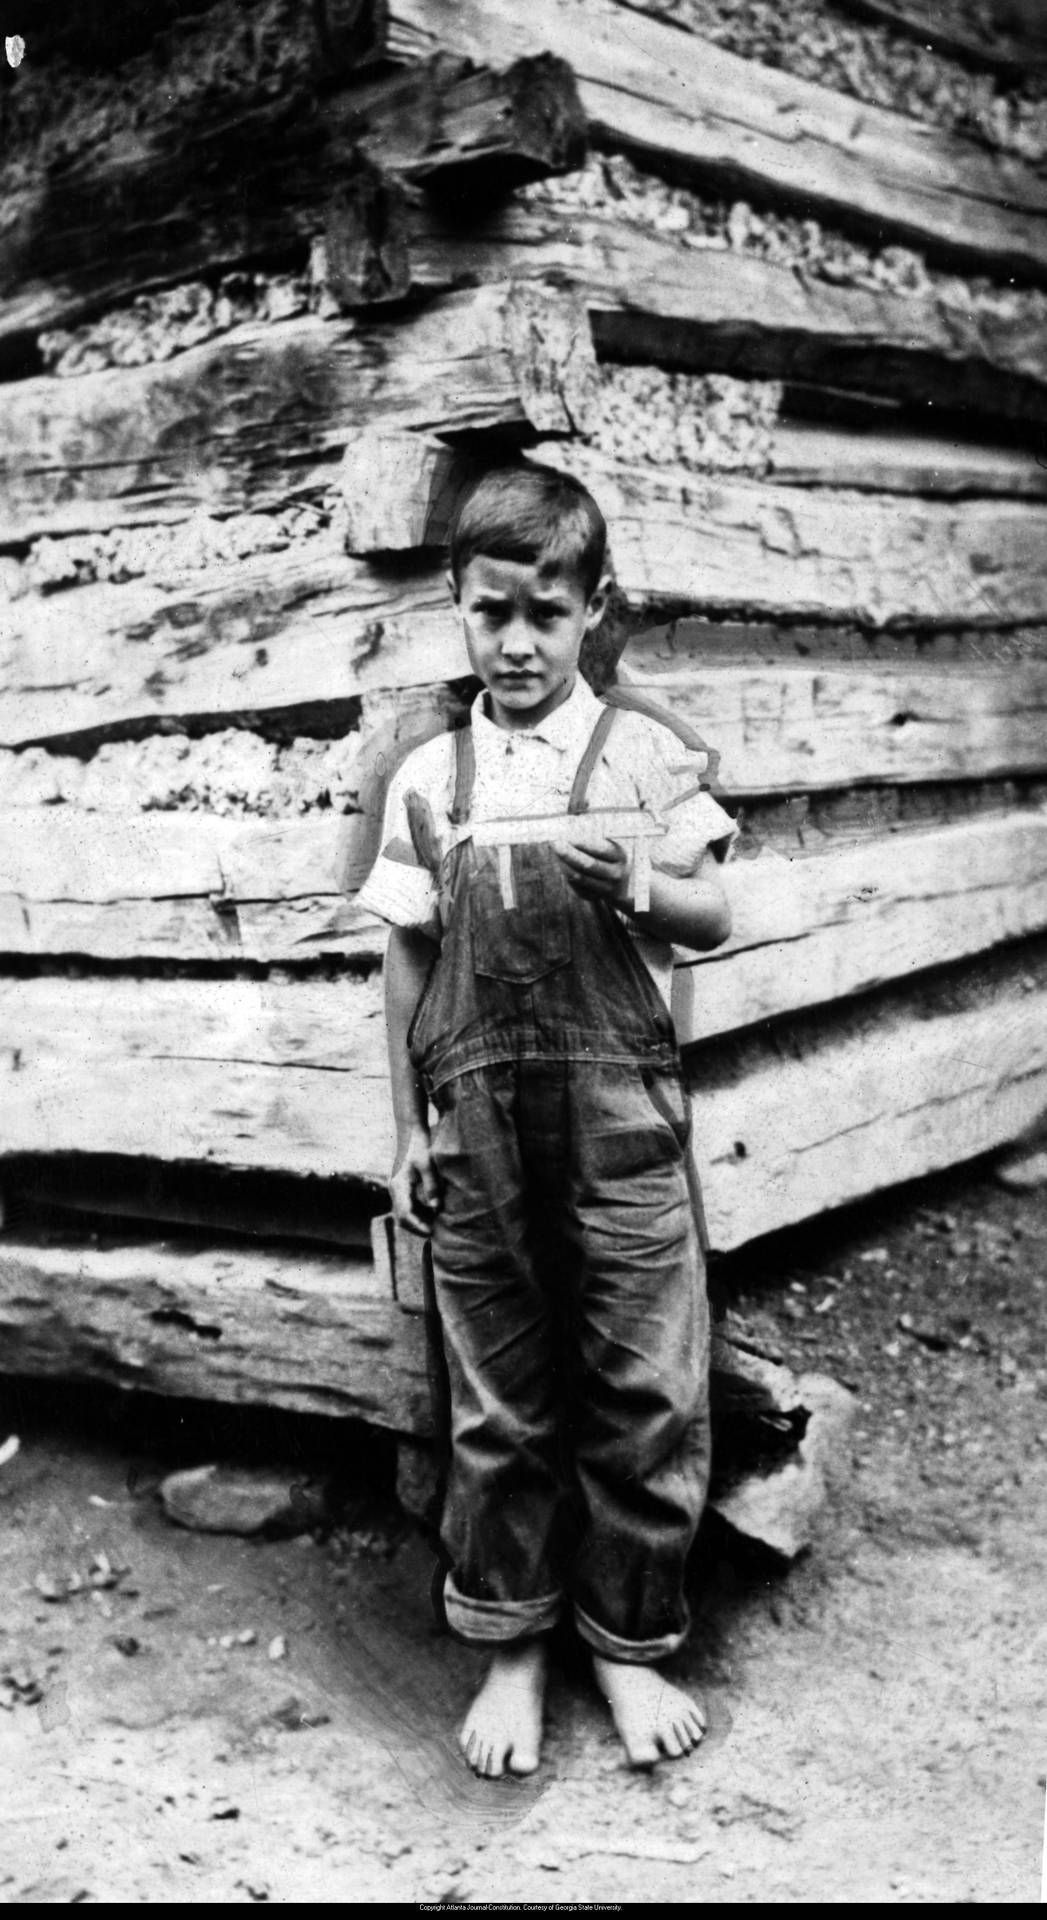 Barefoot young boy (Paul Wooten) outside log cabin, holding a toy he has whittled, Georgia, December 25, 1938.